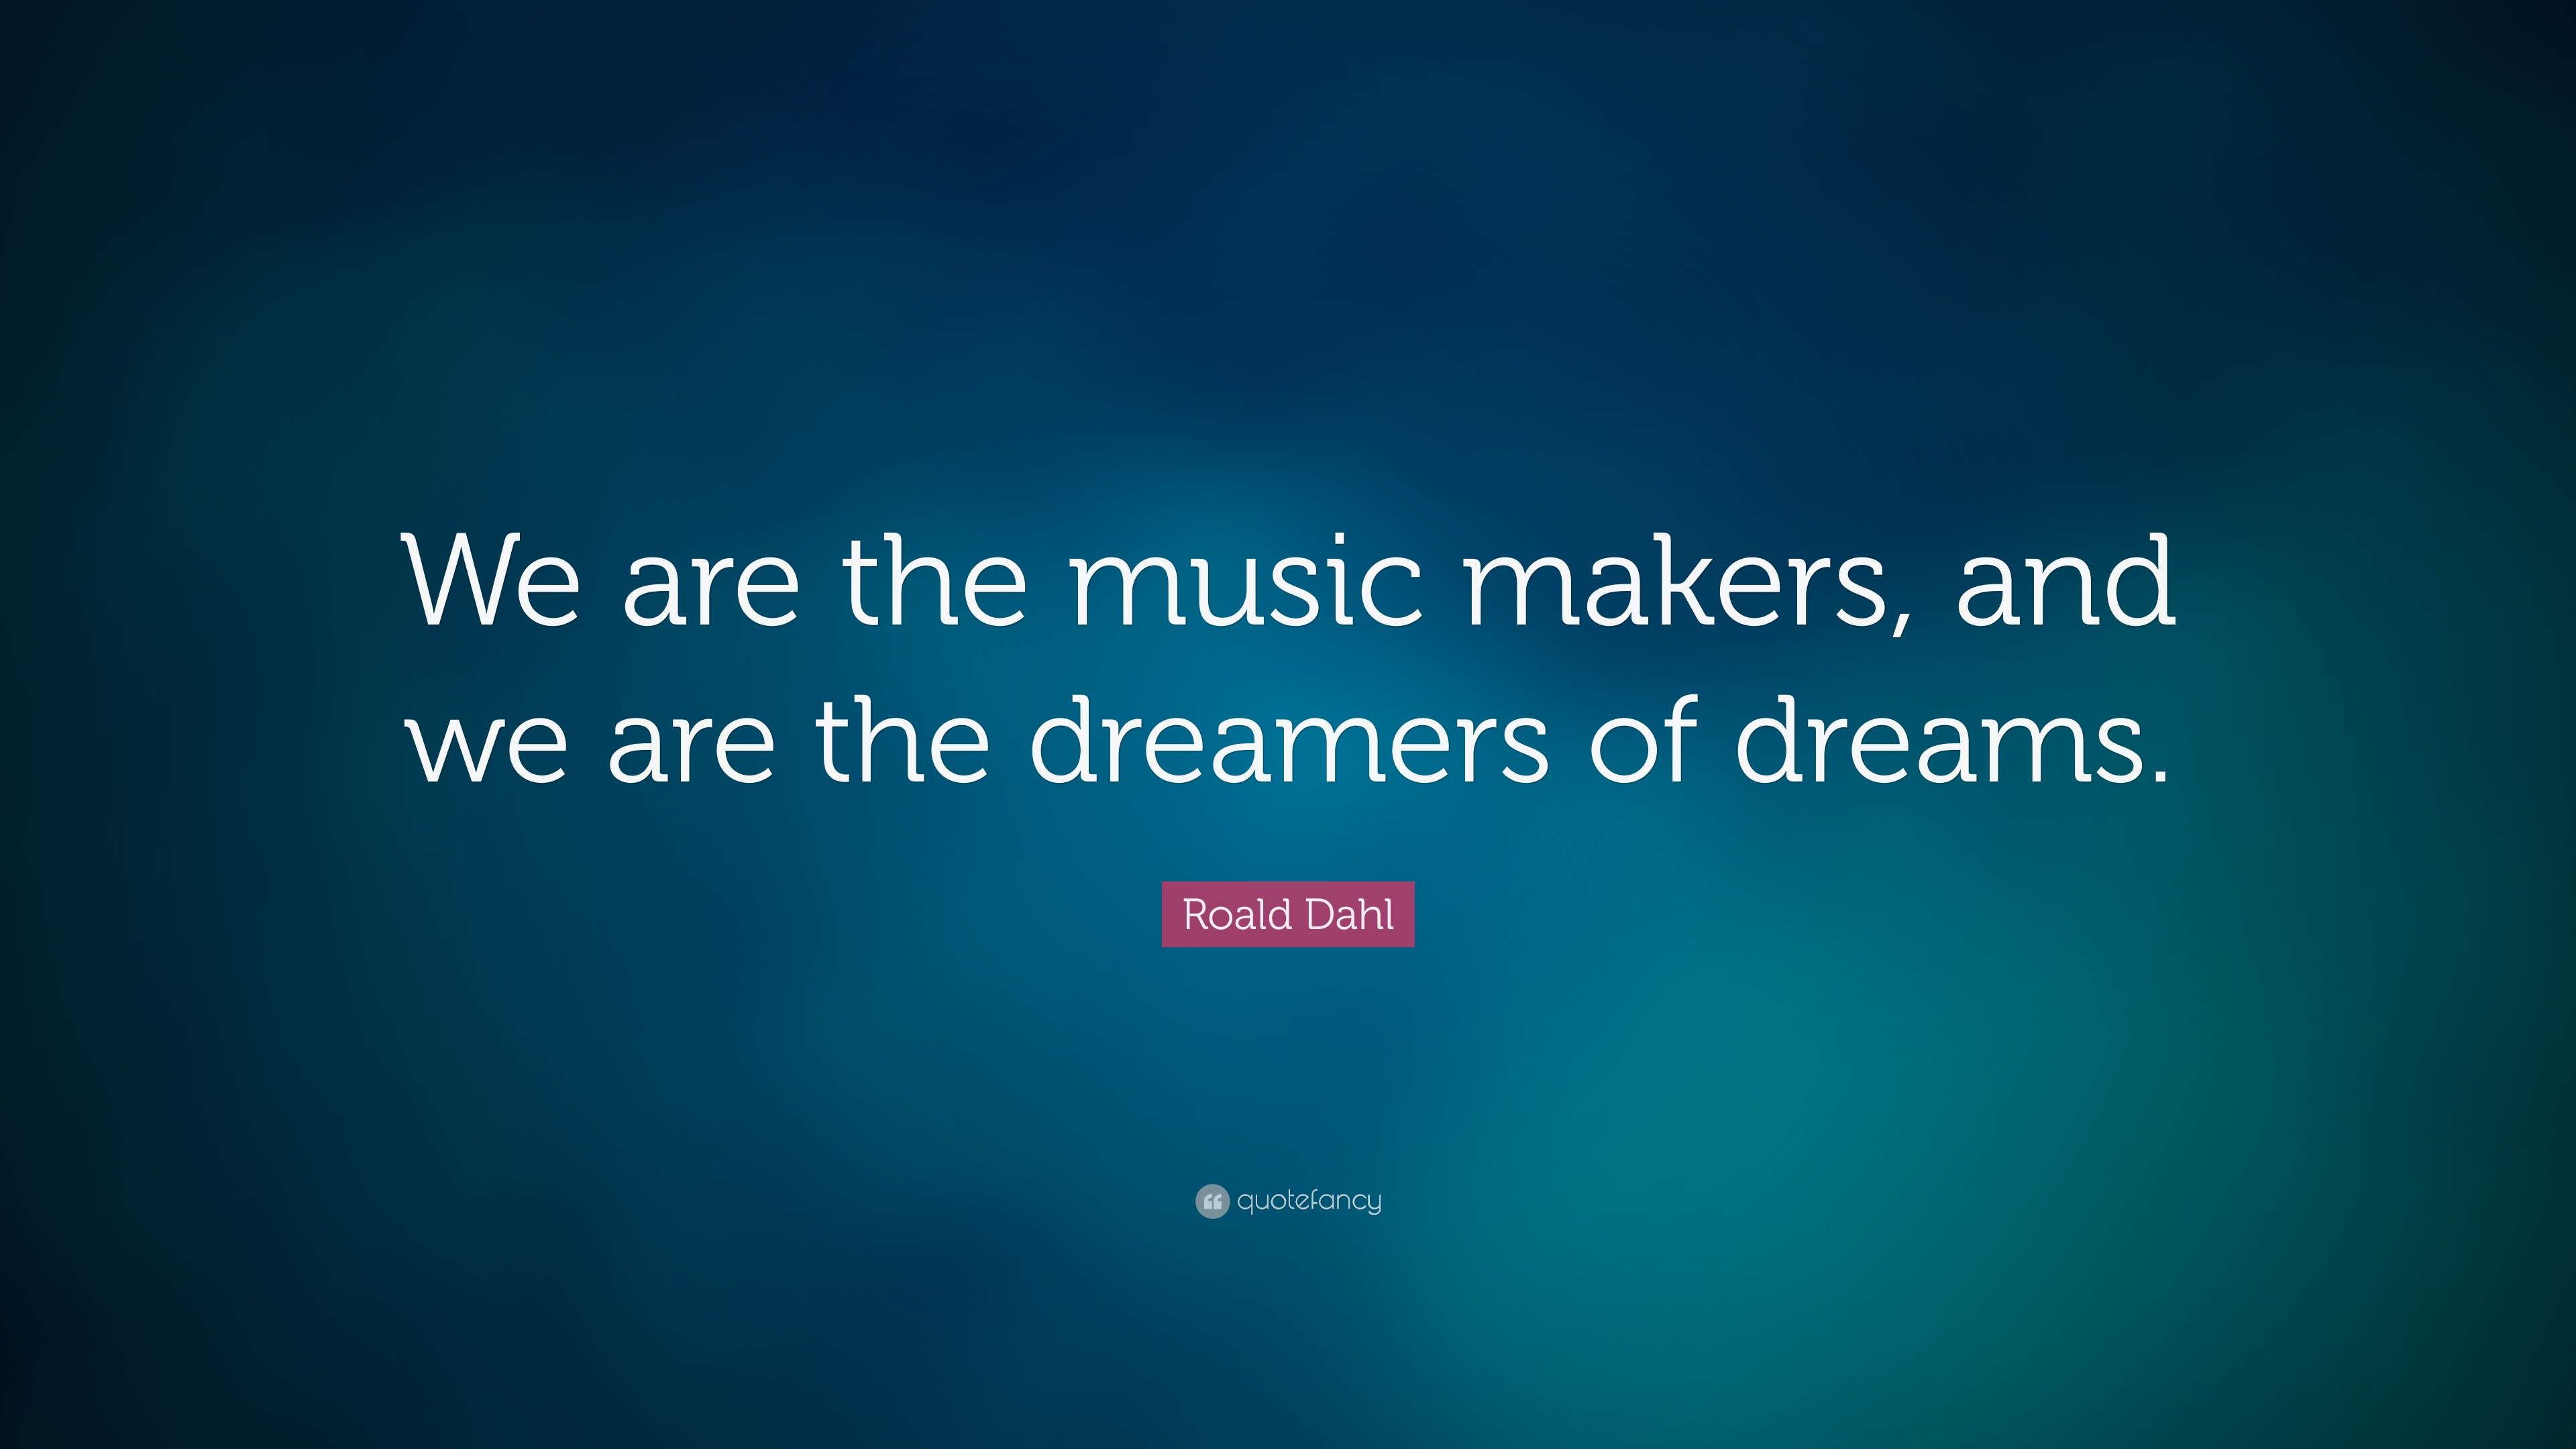 Socrates Wallpaper Quotes Roald Dahl Quote We Are The Music Makers And We Are The